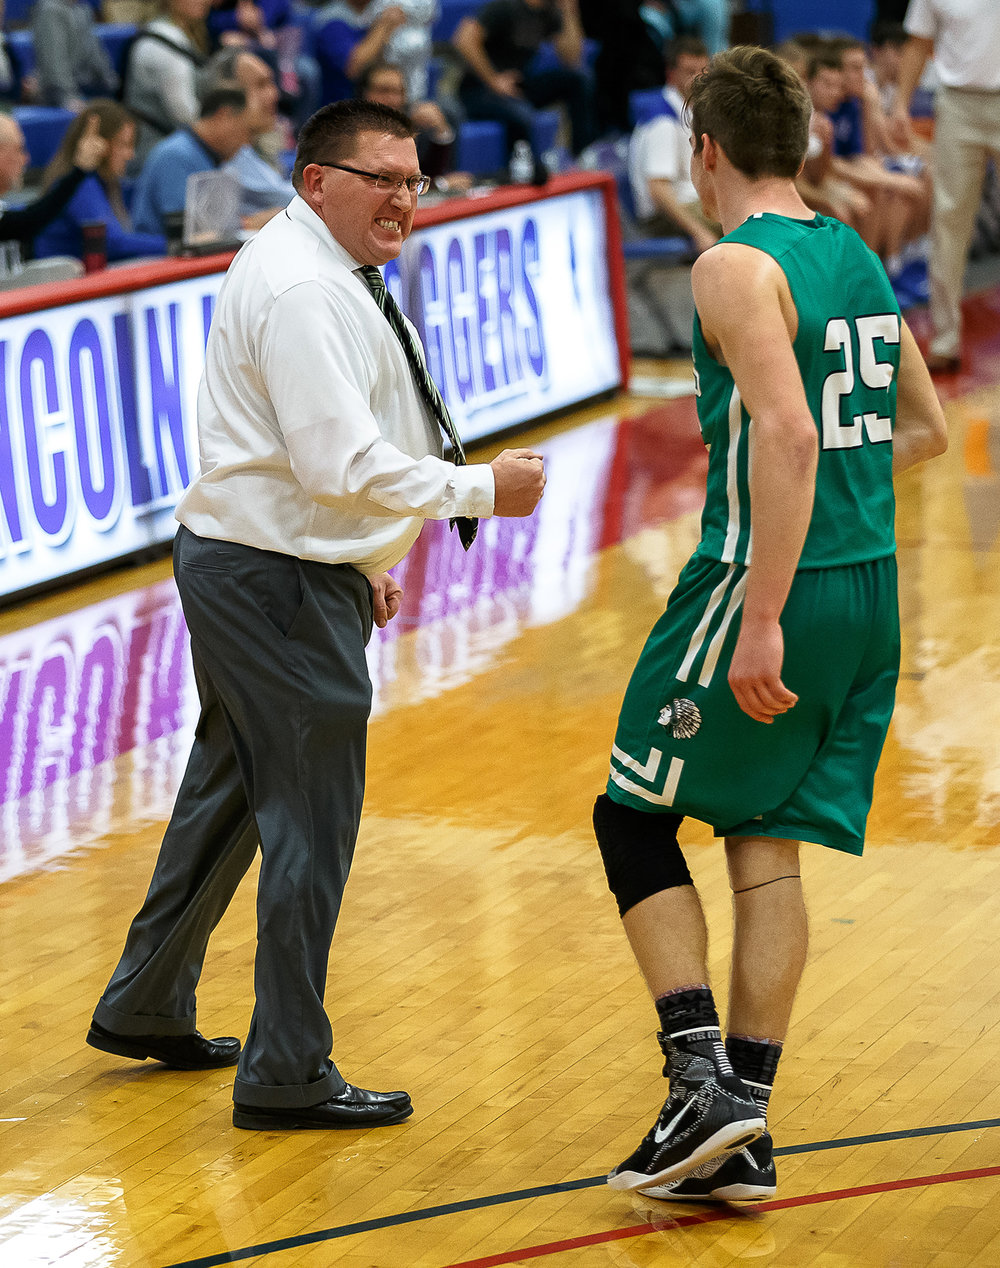 Athens boys basketball head coach Jeff Johnston celebrates with Athens' Drayton Davis (25) after he created a turnover and made a shot that put the Warriors up 48-47 against Auburn in the second half during opening night of the Boys Sangamon County Tournament at Lincoln Land Community College's Cass Gymnasium, Monday, Jan. 8, 2018, in Springfield, Ill. [Justin L. Fowler/The State Journal-Register]